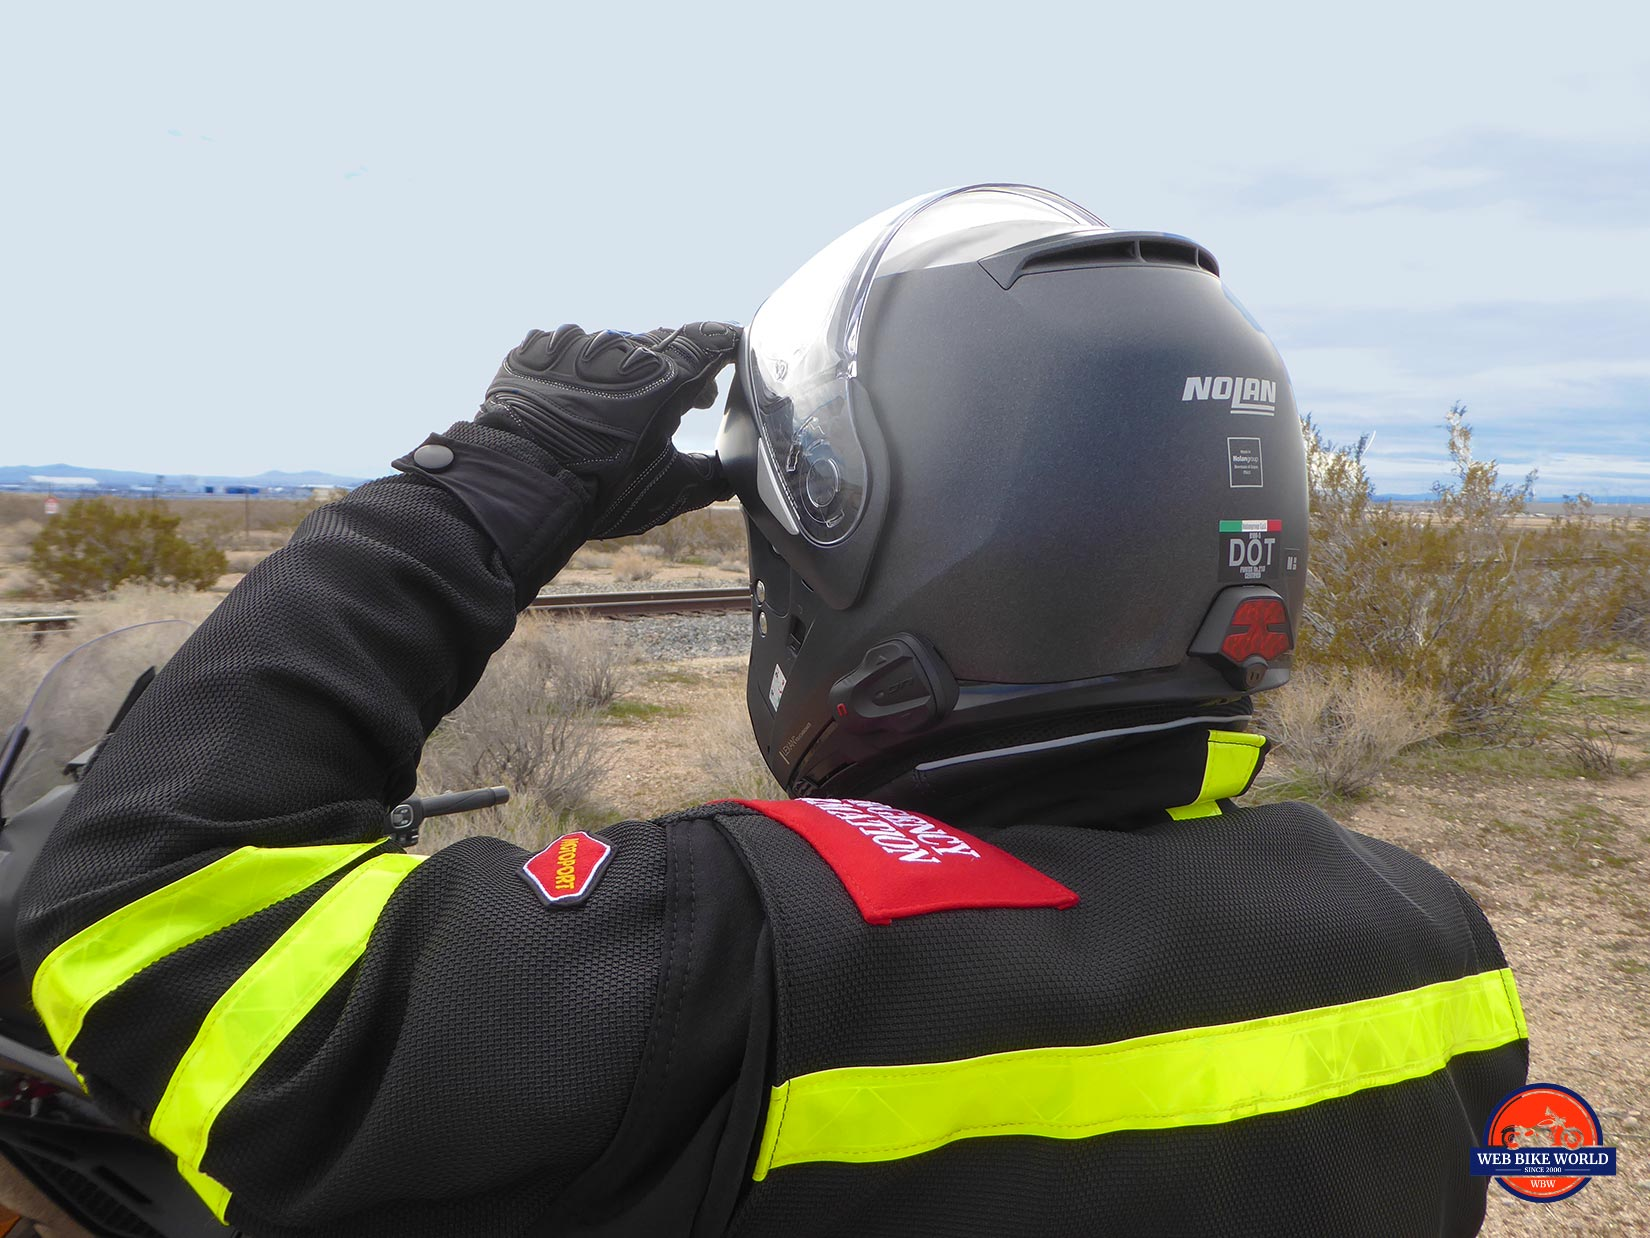 Rear view of the Nolan N100-5 helmet with N-Com B901L installed.